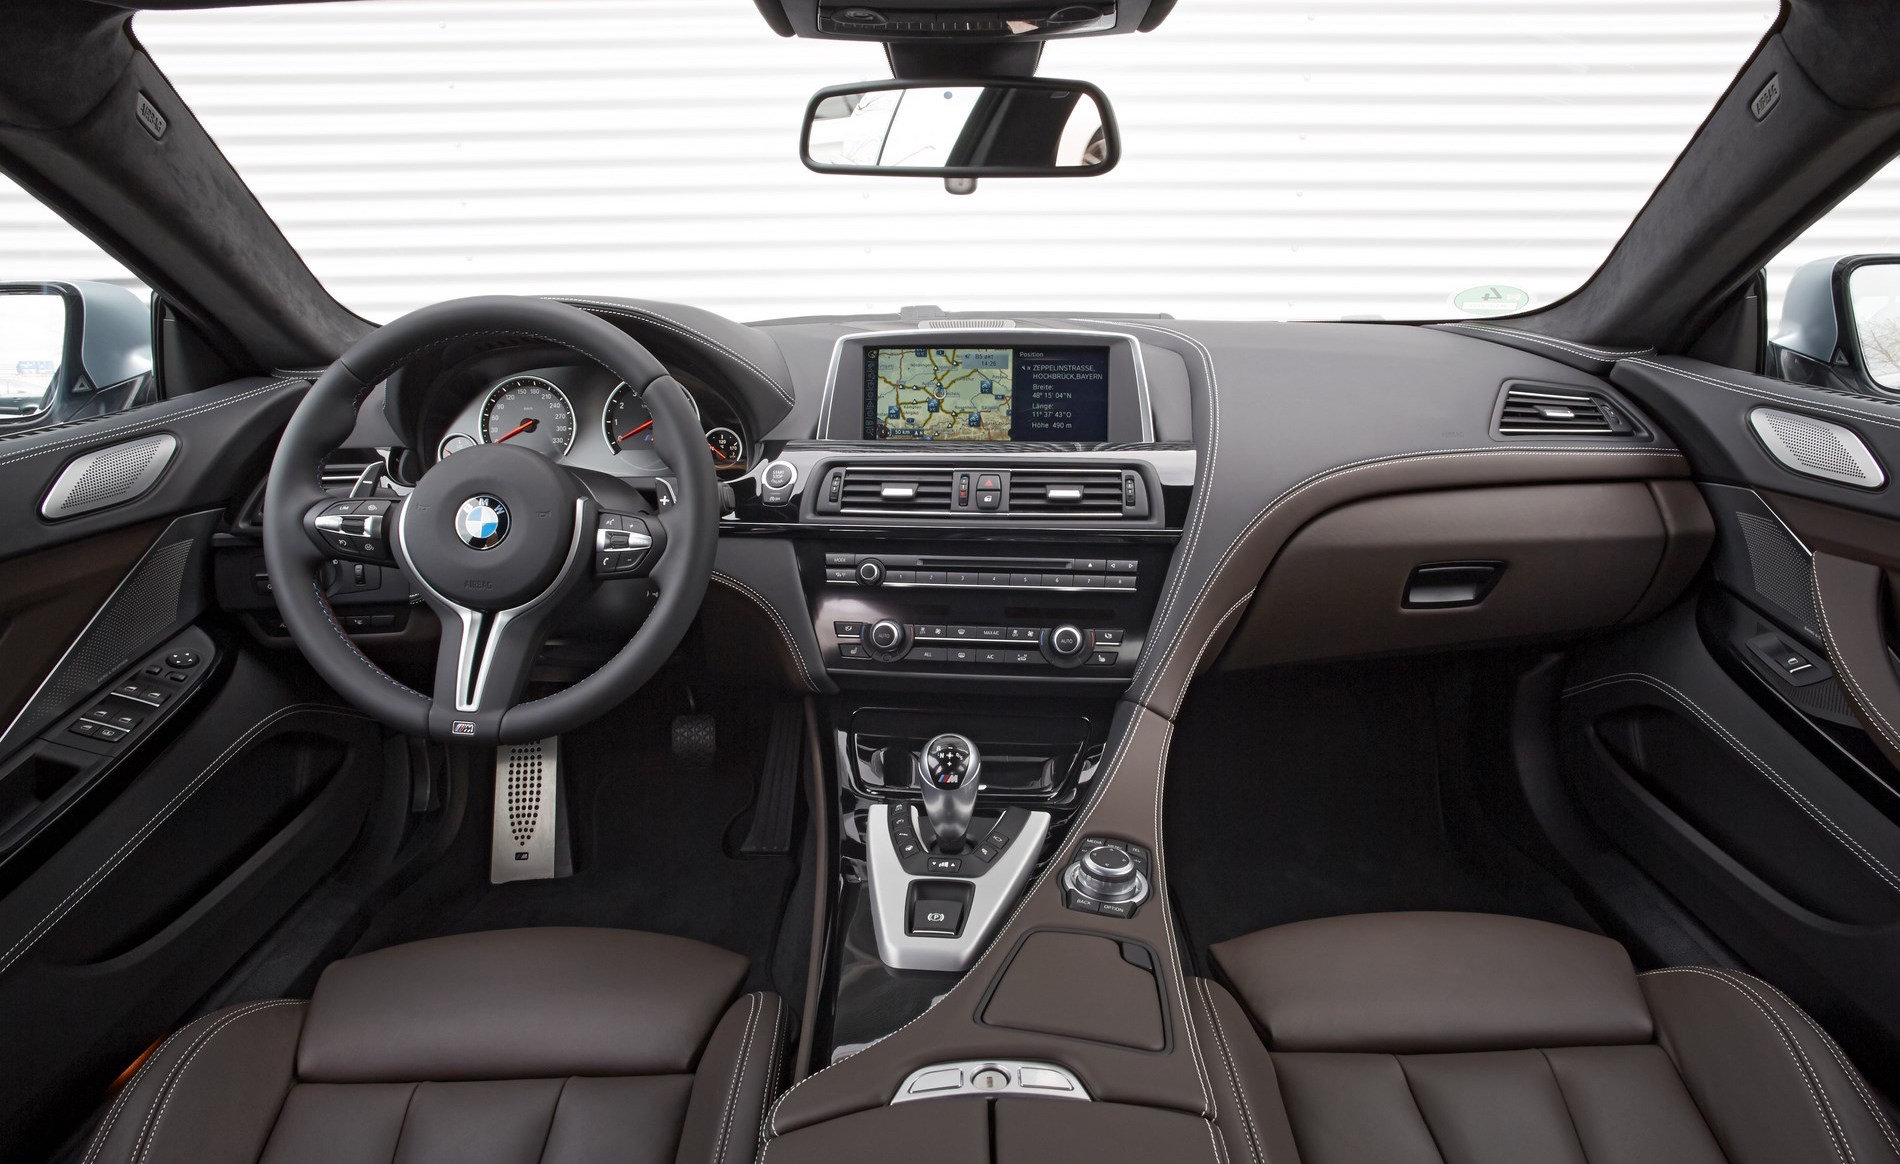 BMW 6 Series Gets New Technology For Spring 2016